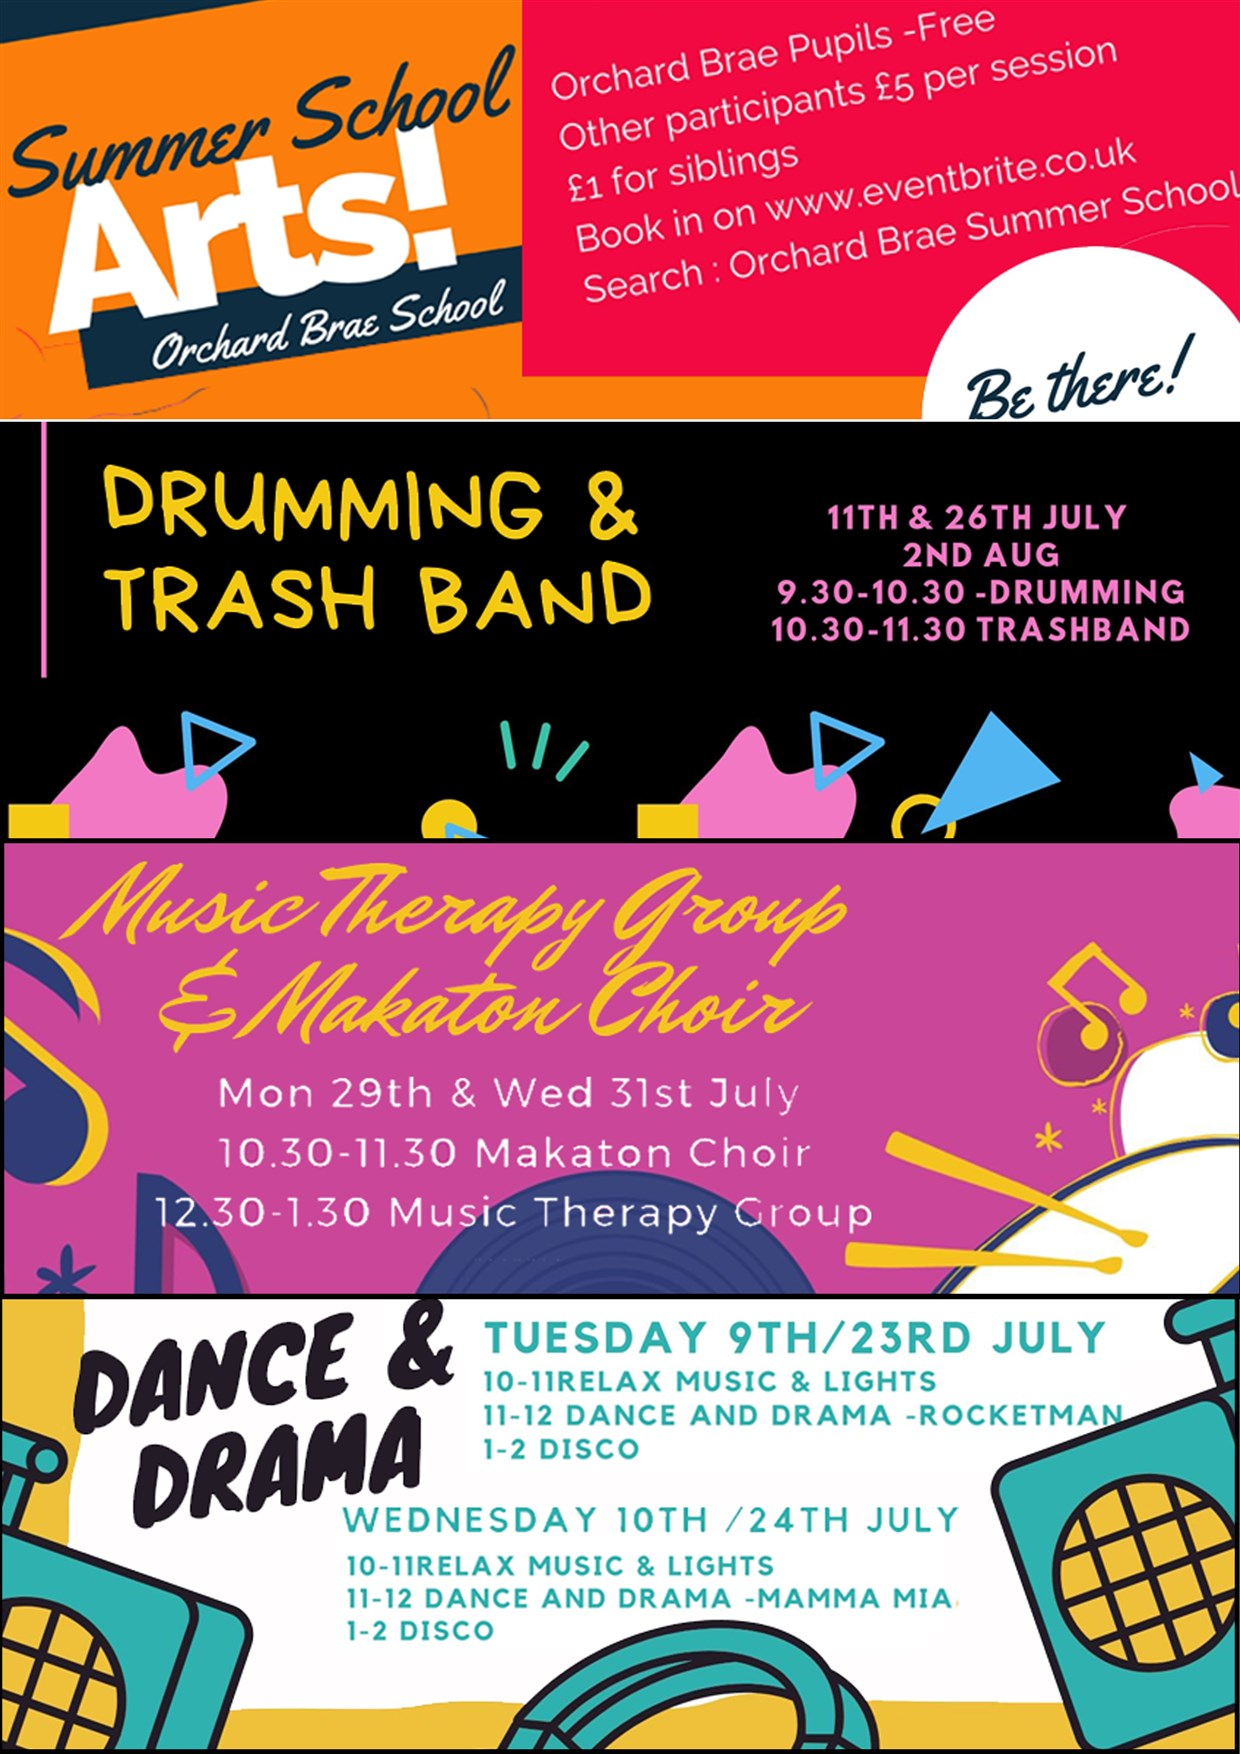 Summer School Arts Clubs at Orchard Brae